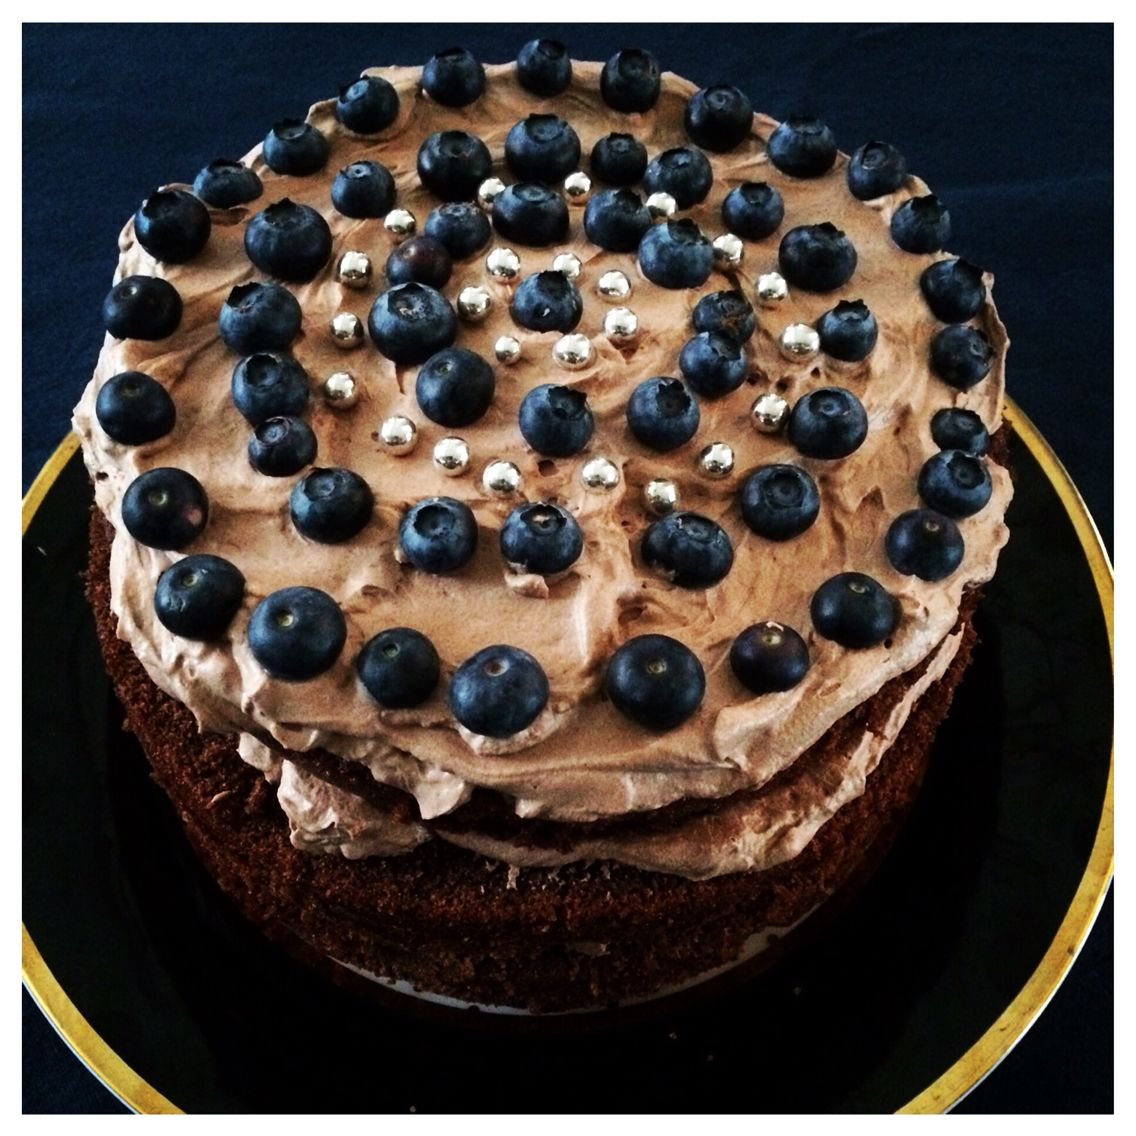 Christmaschocolatecake with blueberry's